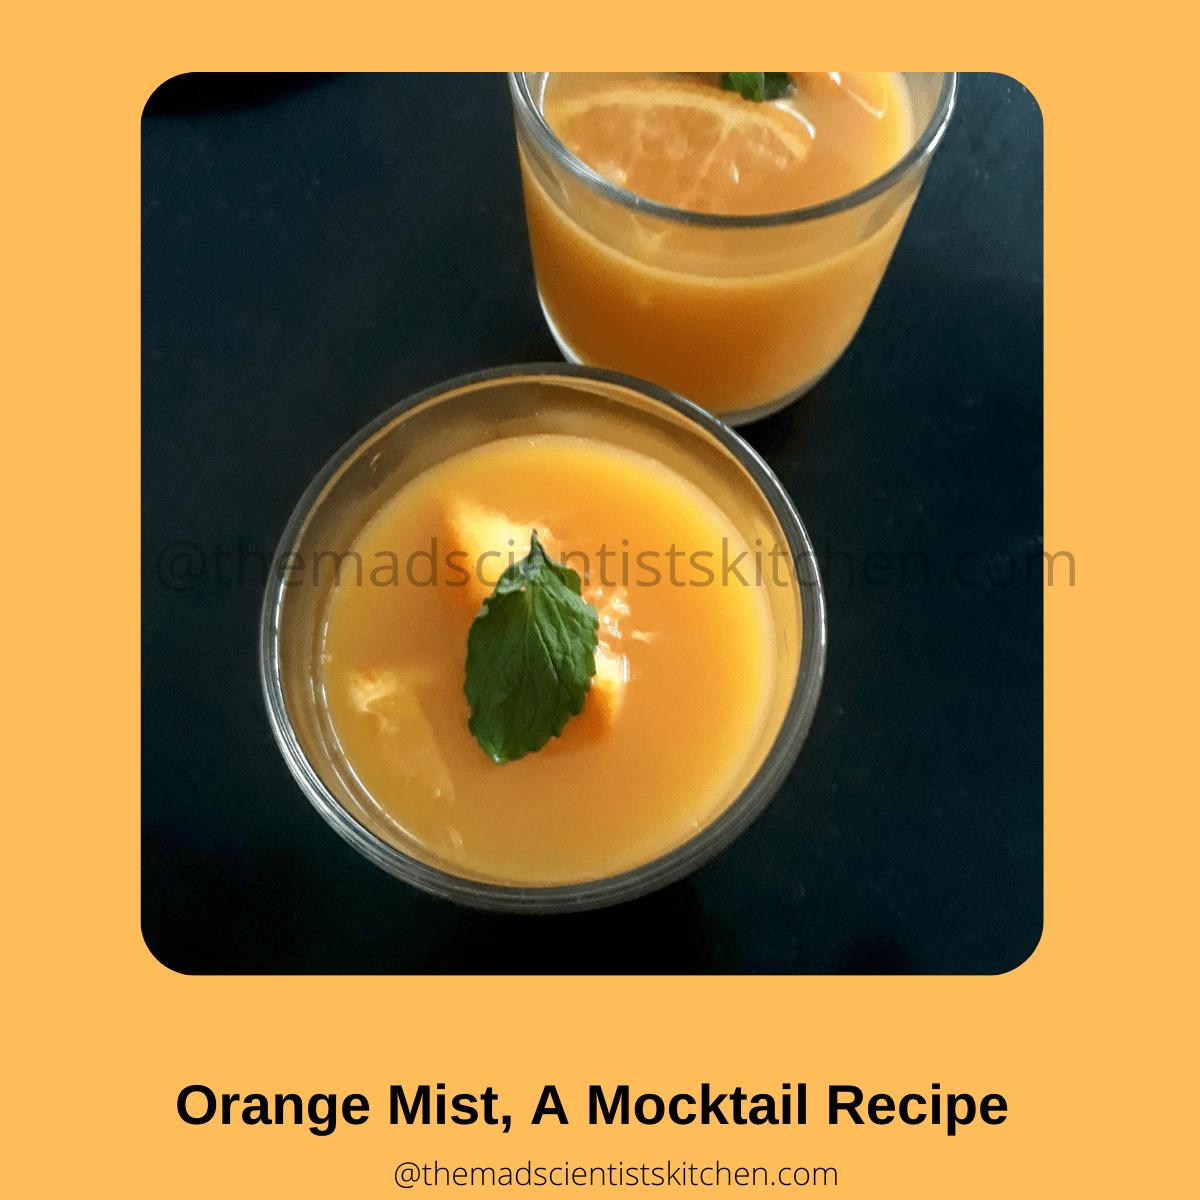 A mocktail that you can serve even toddlers, Orange Mist